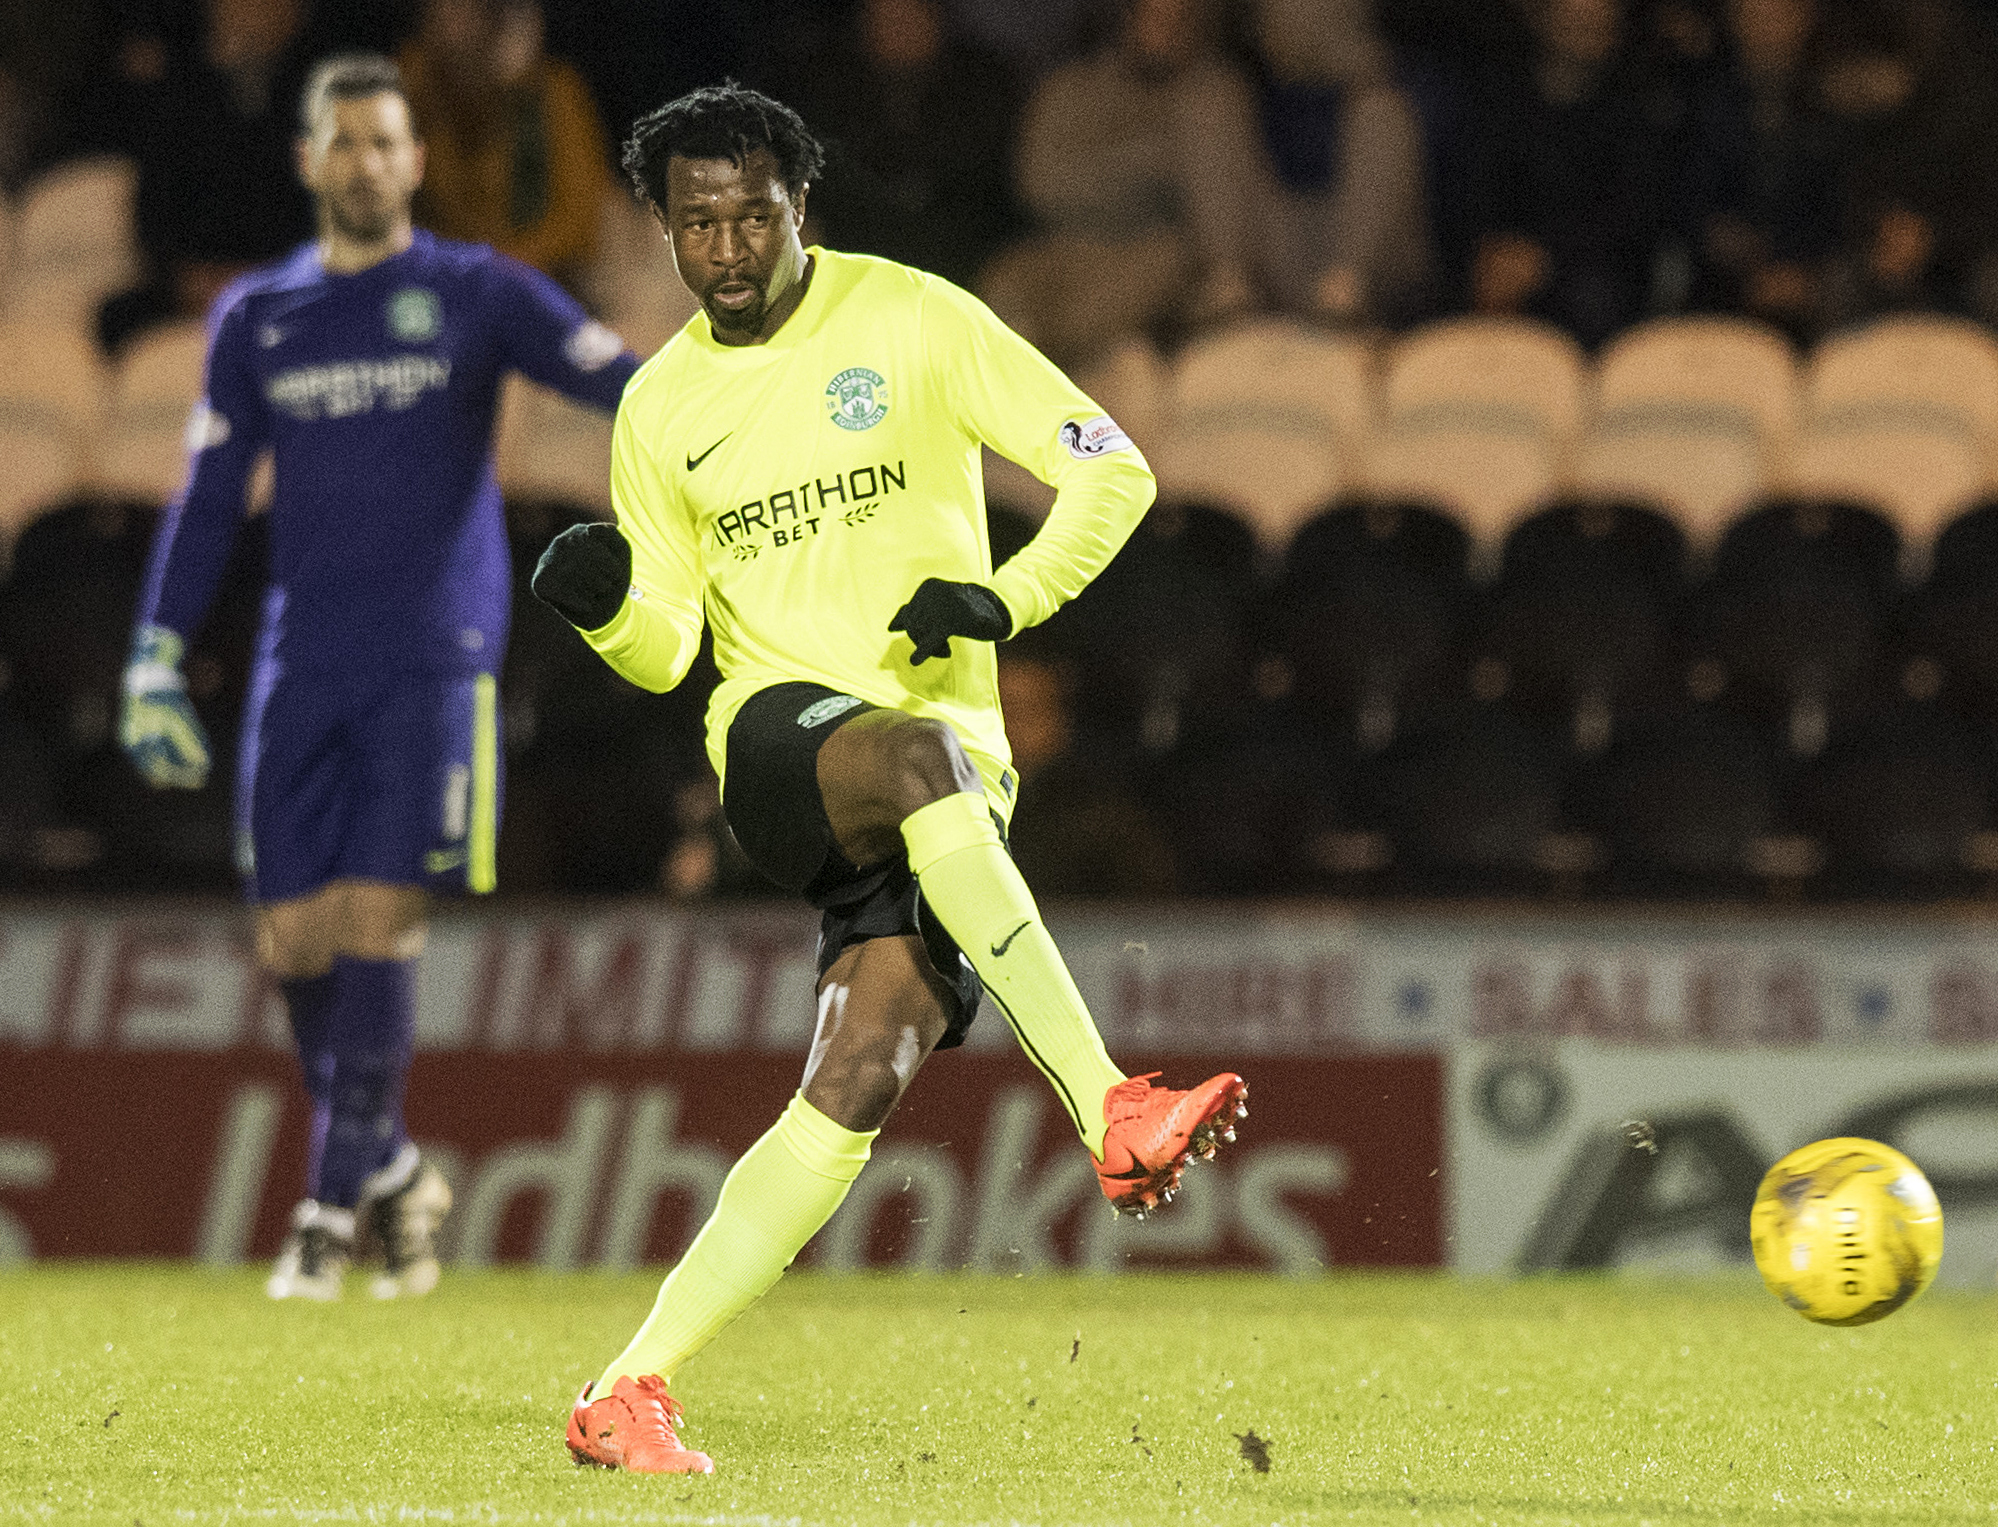 The big interview: Efe Ambrose opens up on being booed by Celtic fans, the genius of Brendan Rodgers and wanting to be Scottish